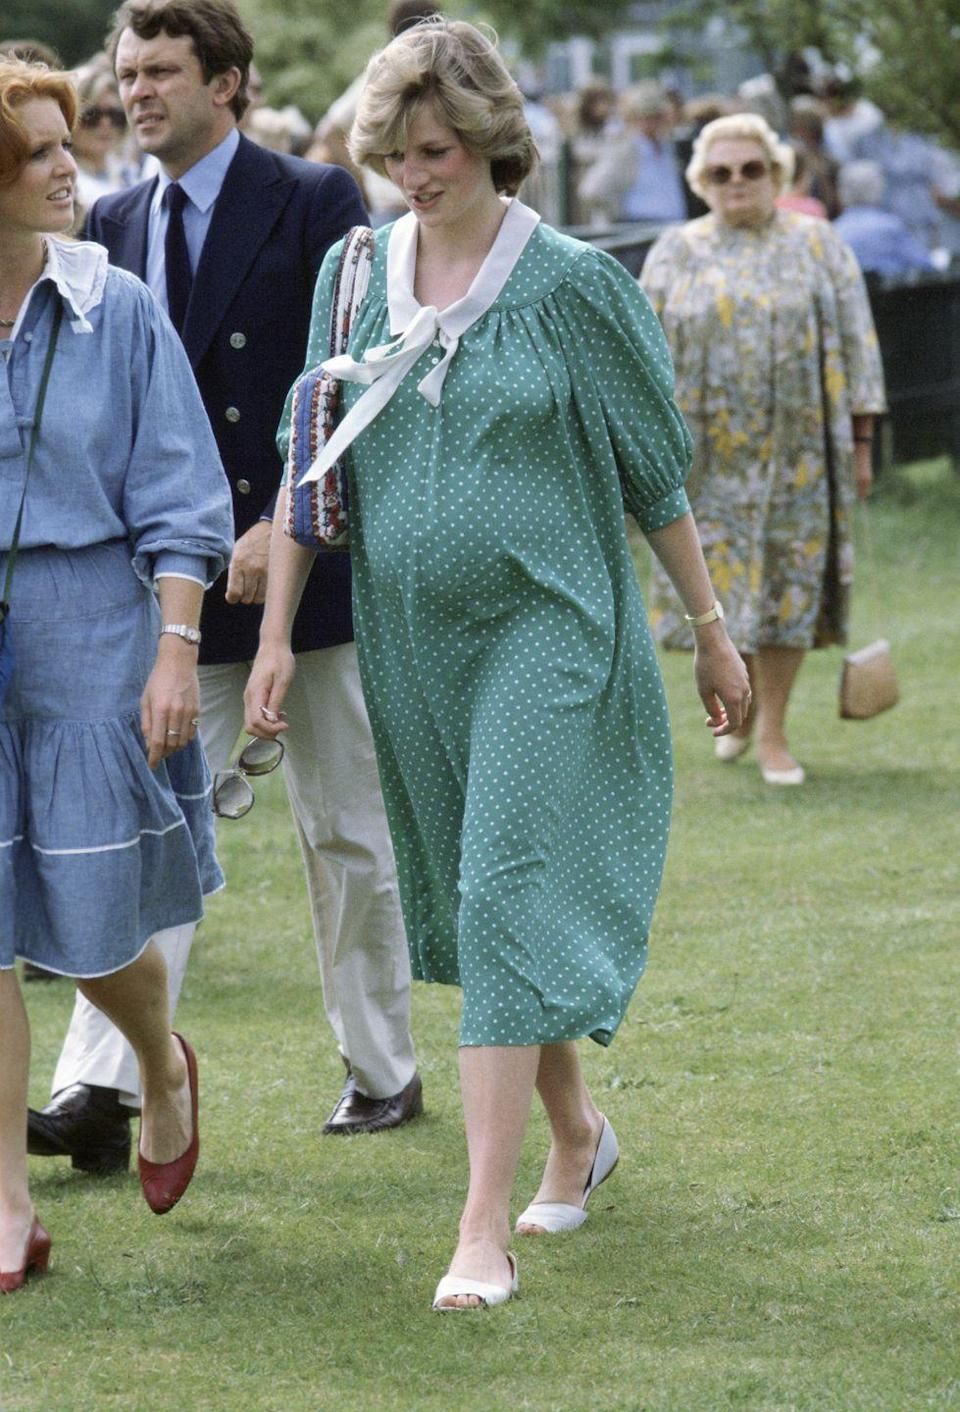 <p>All eyes were on Princess Diana during her highly publicized pregnancy. Everyone's favorite royal made oversized shirtdresses in baby pastels an instant trend with moms-to-be around the world.</p>